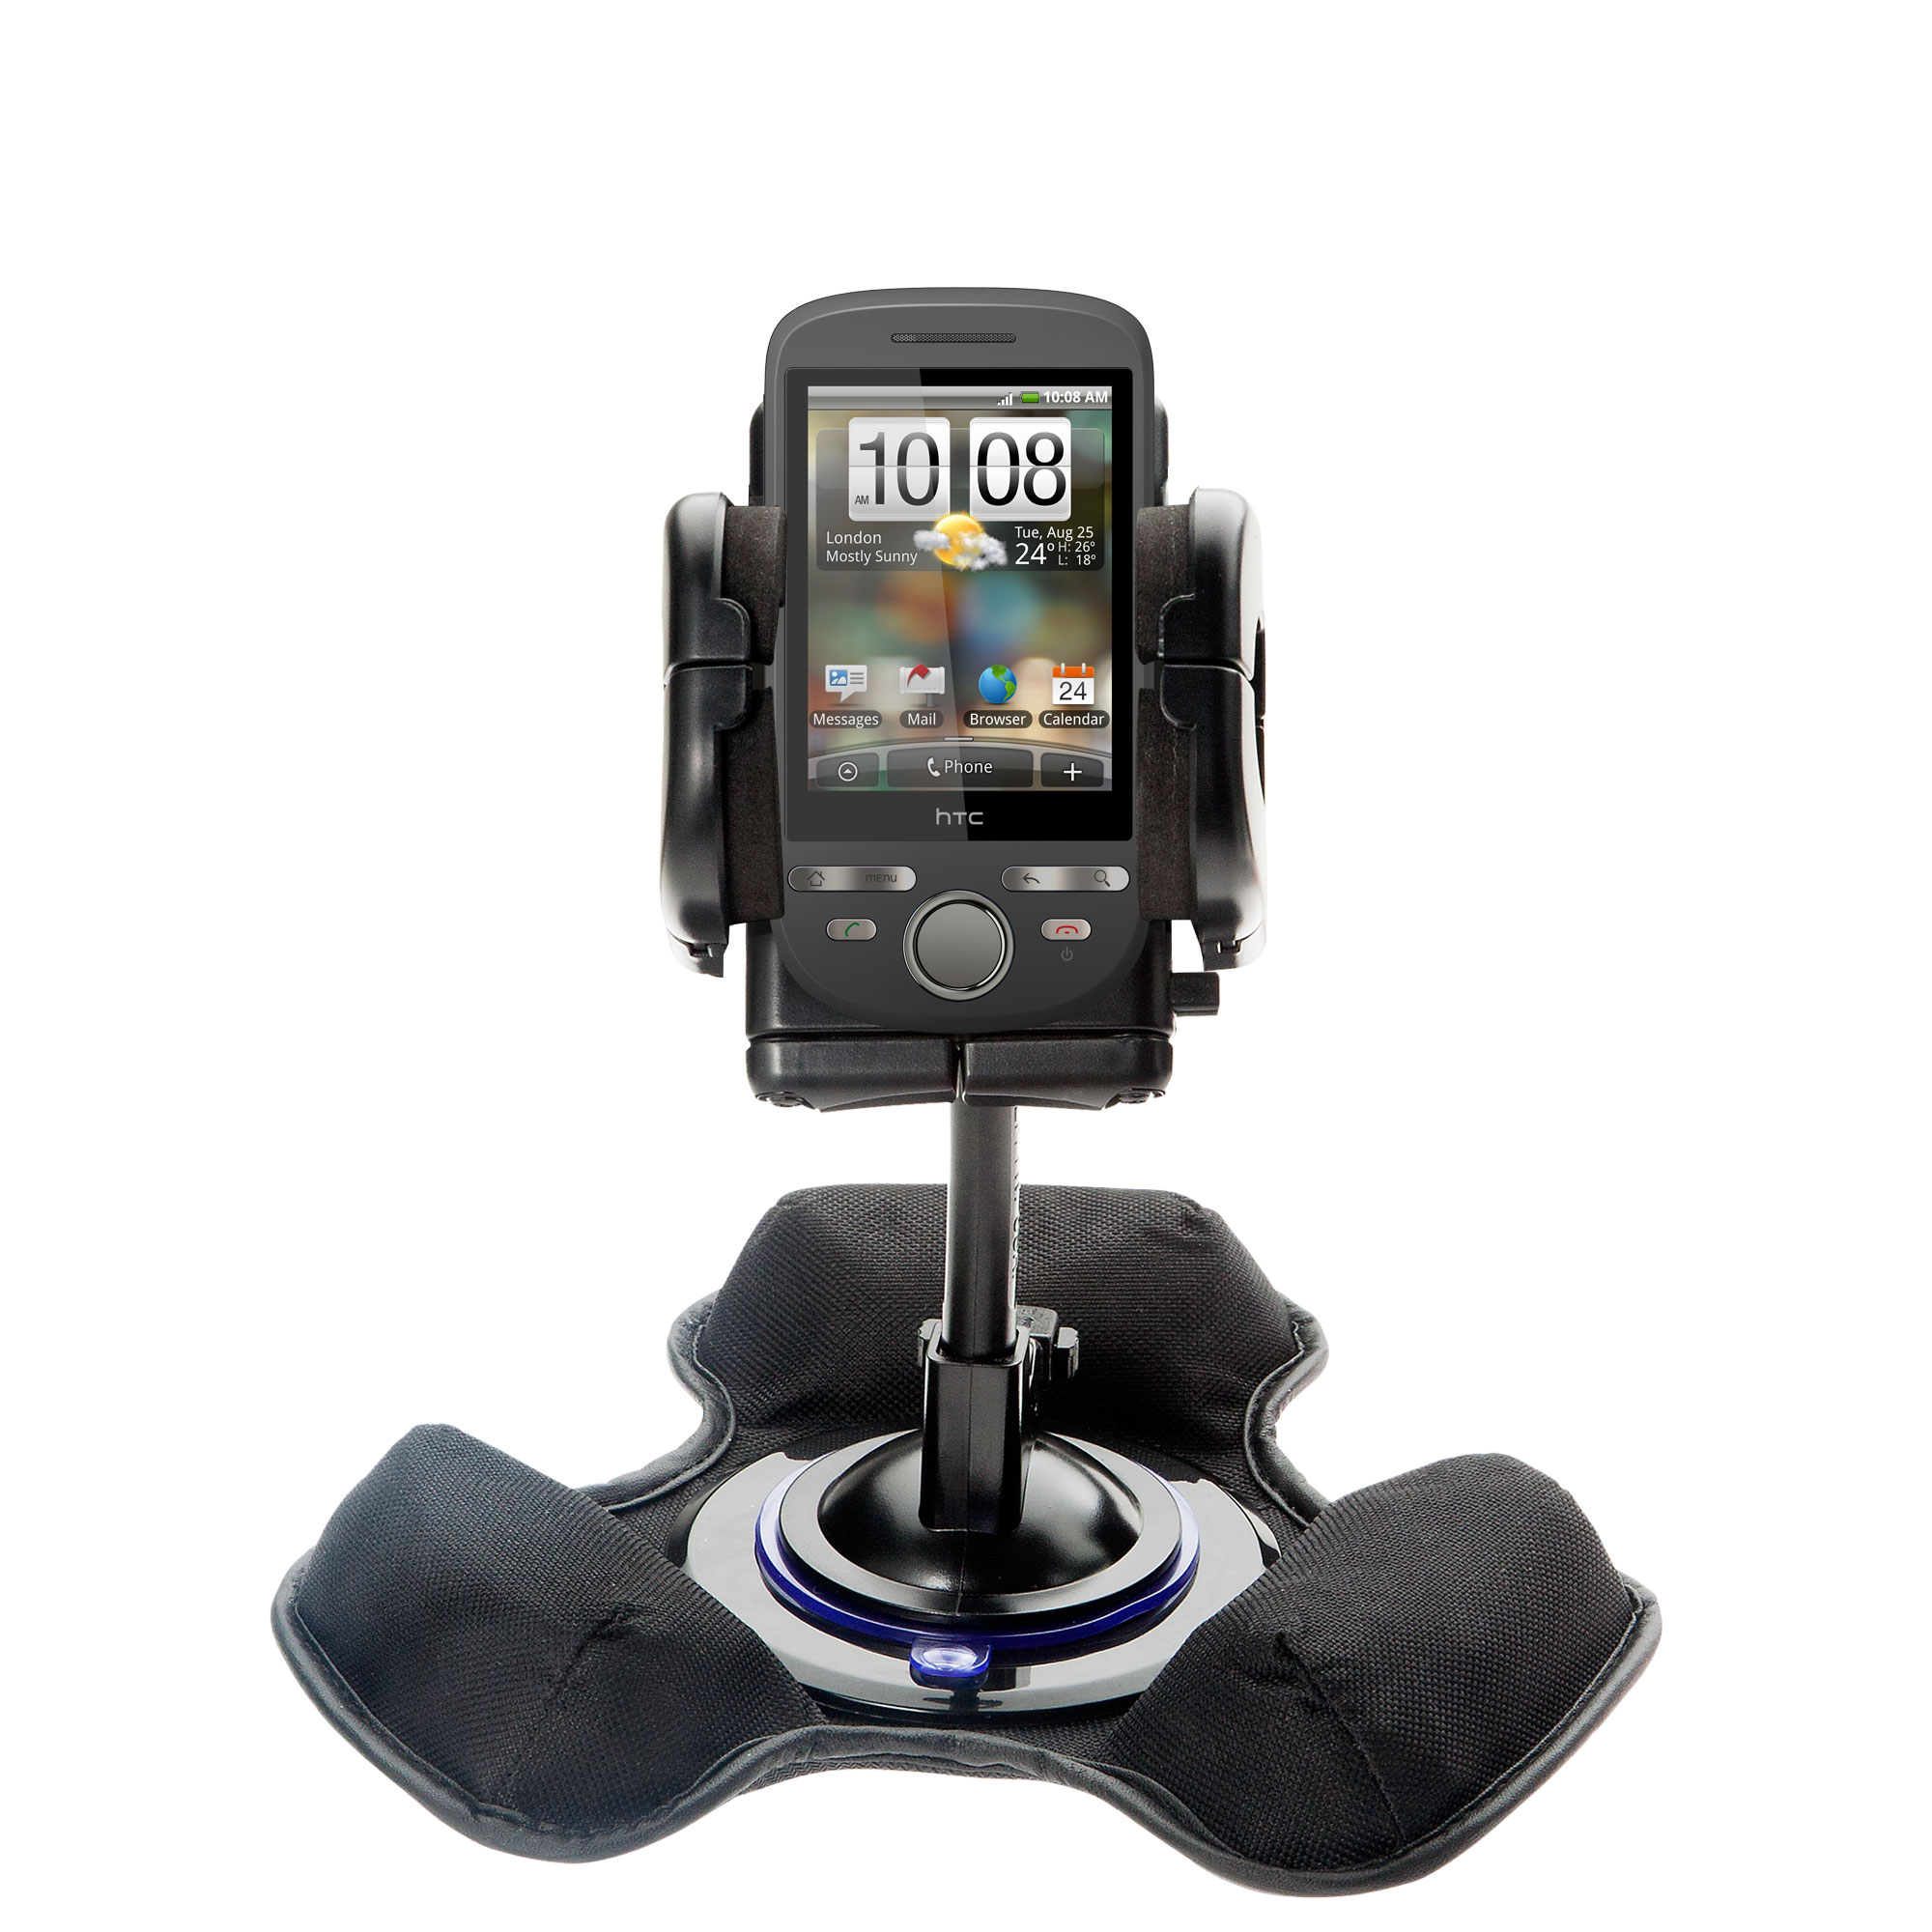 Dash and Windshield Holder compatible with the HTC Click